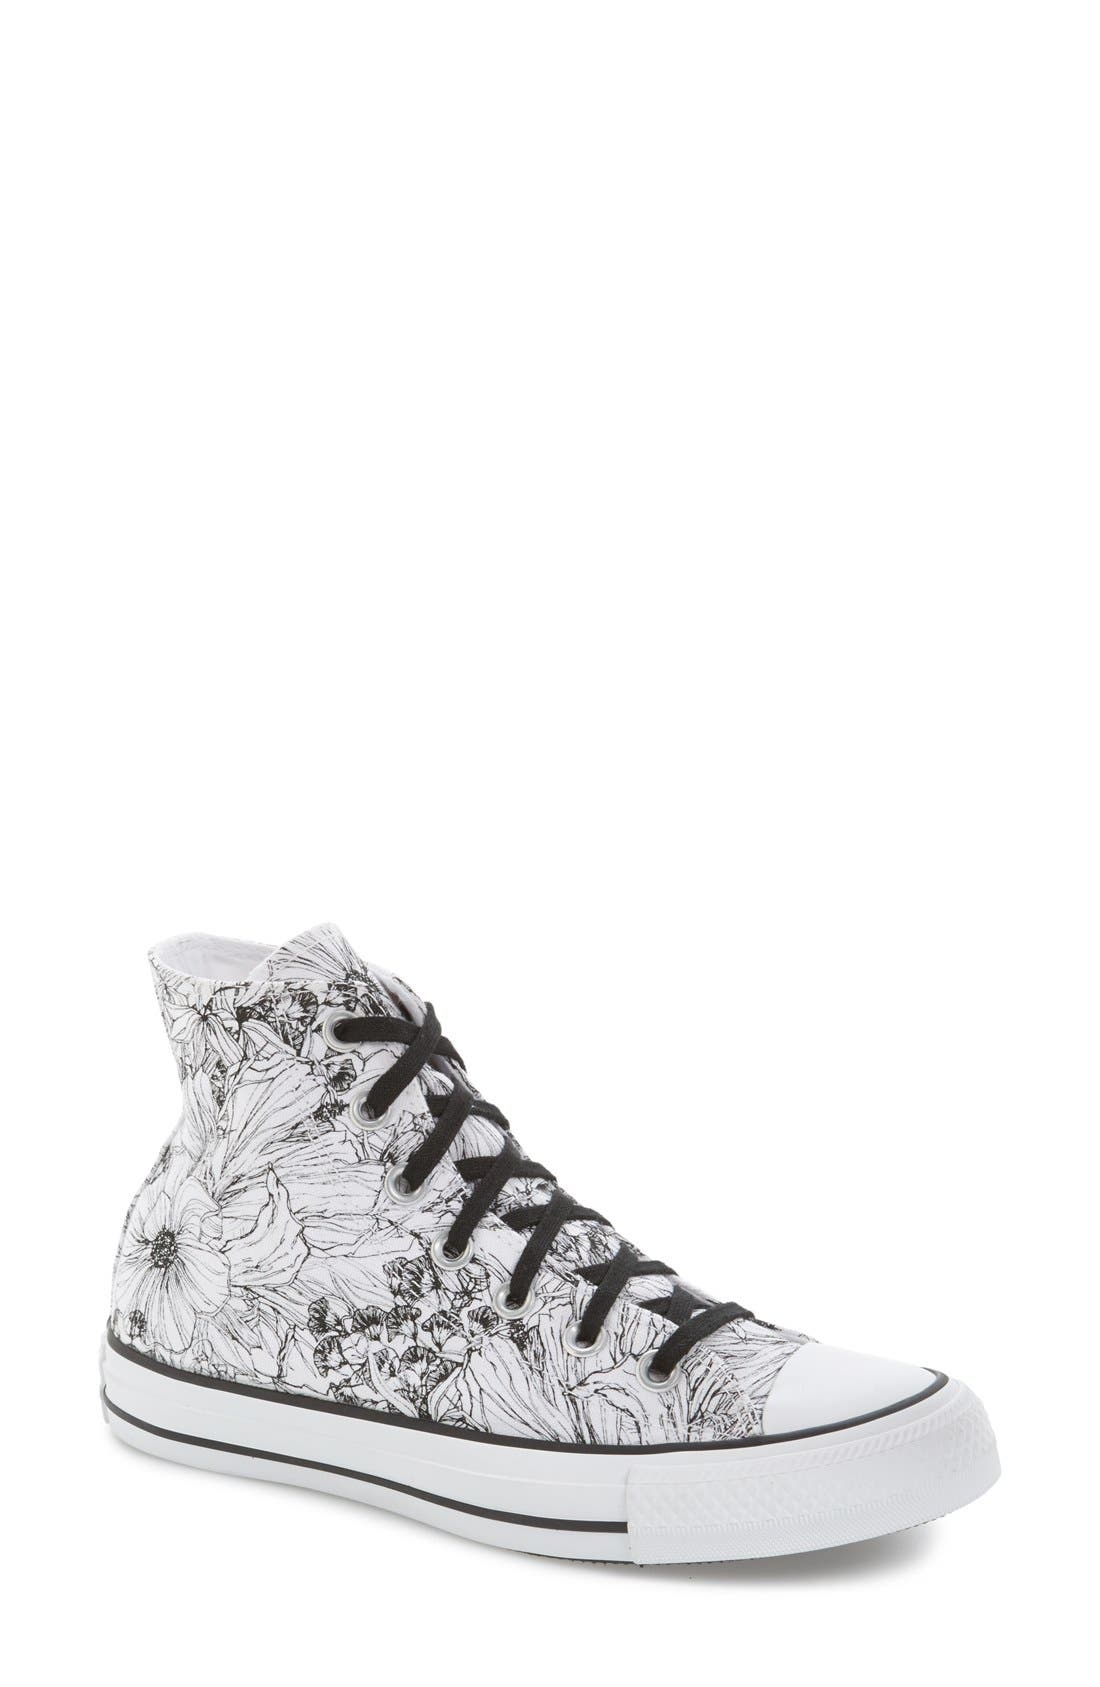 Main Image - Converse Chuck Taylor® All Star® Floral Outline High Top Sneaker (Women)